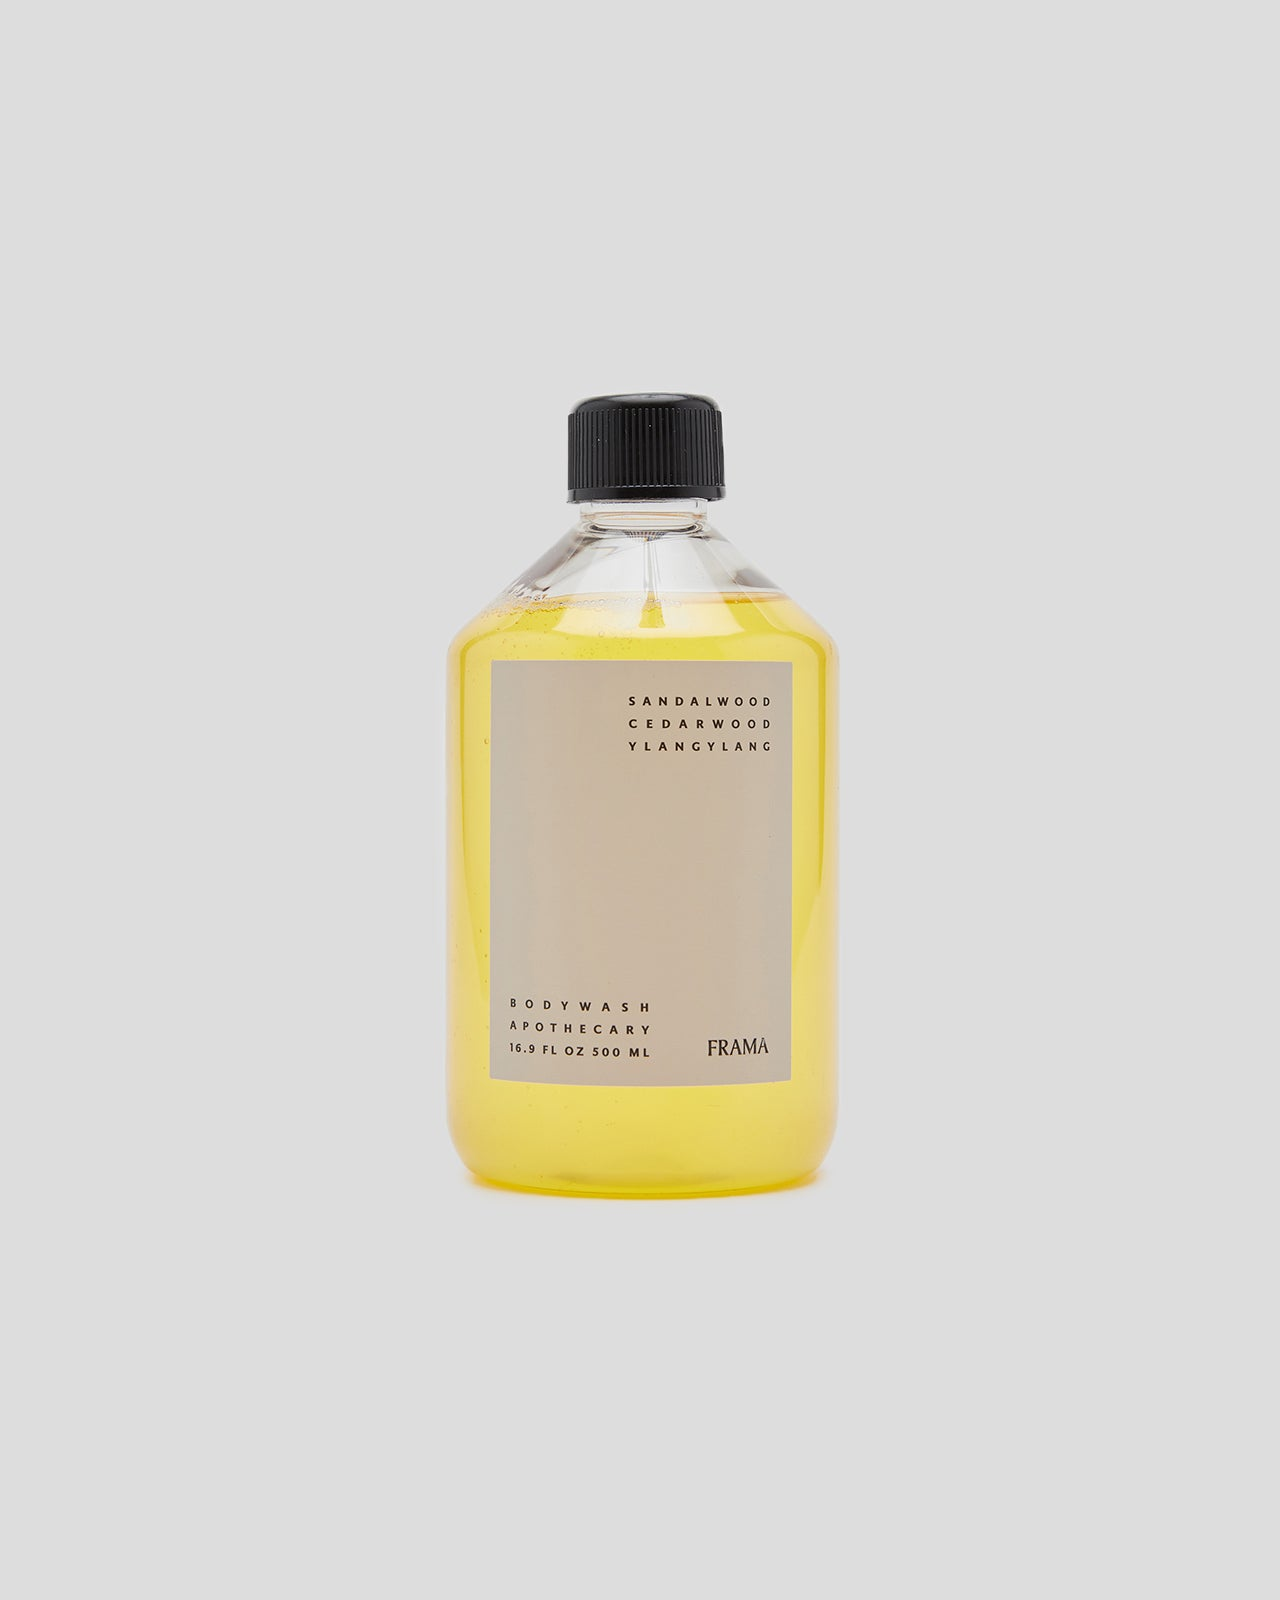 Apothecary Body Wash Refill 500ml